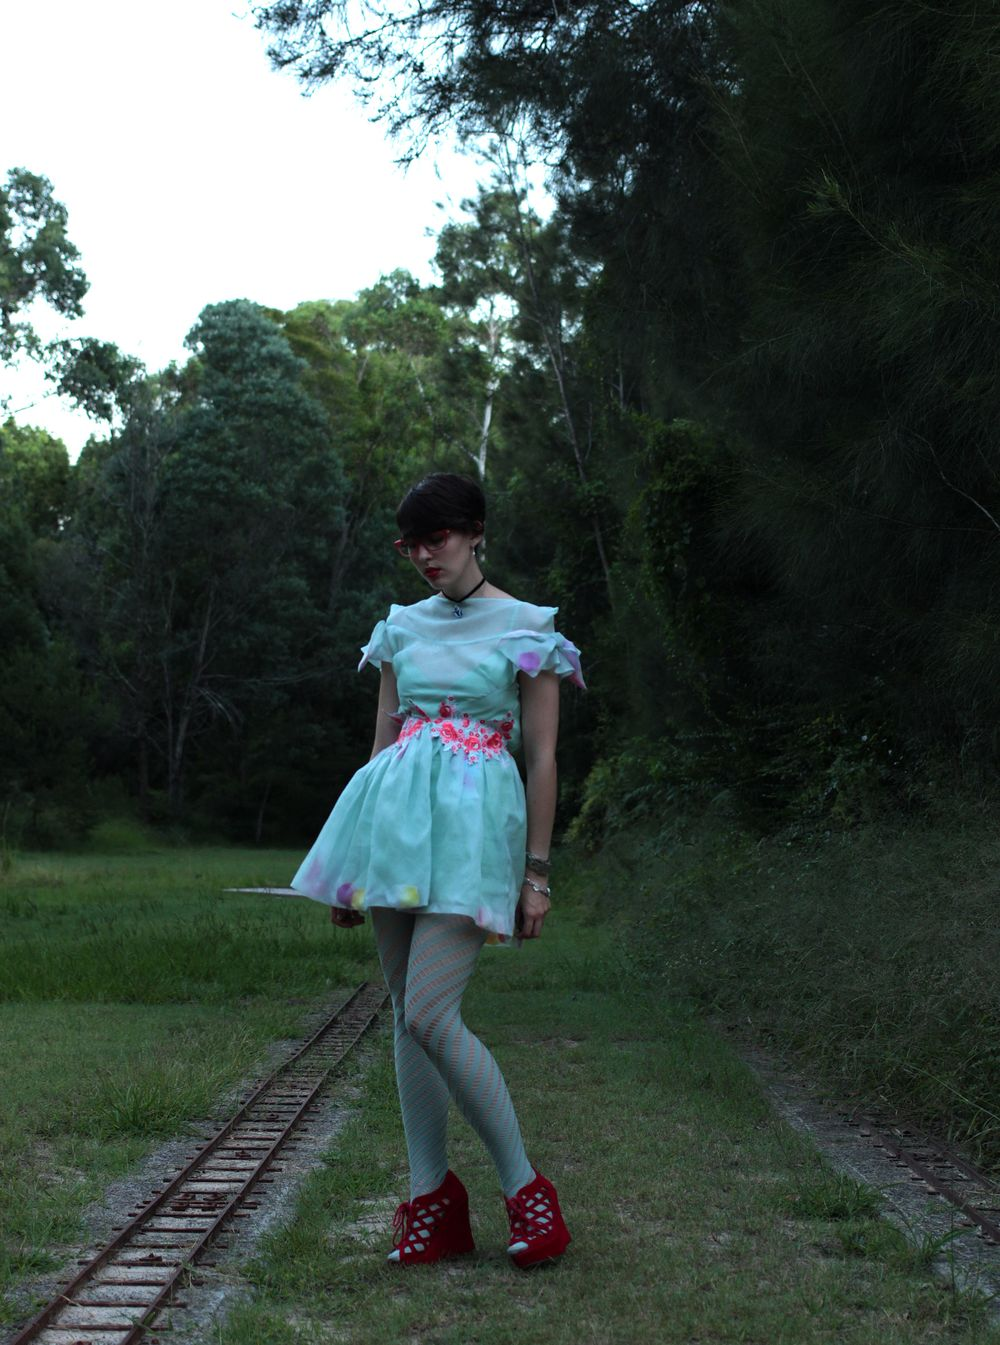 Dress: Lady Petrova, Tights: Ebay, Shoes: Thrifted.